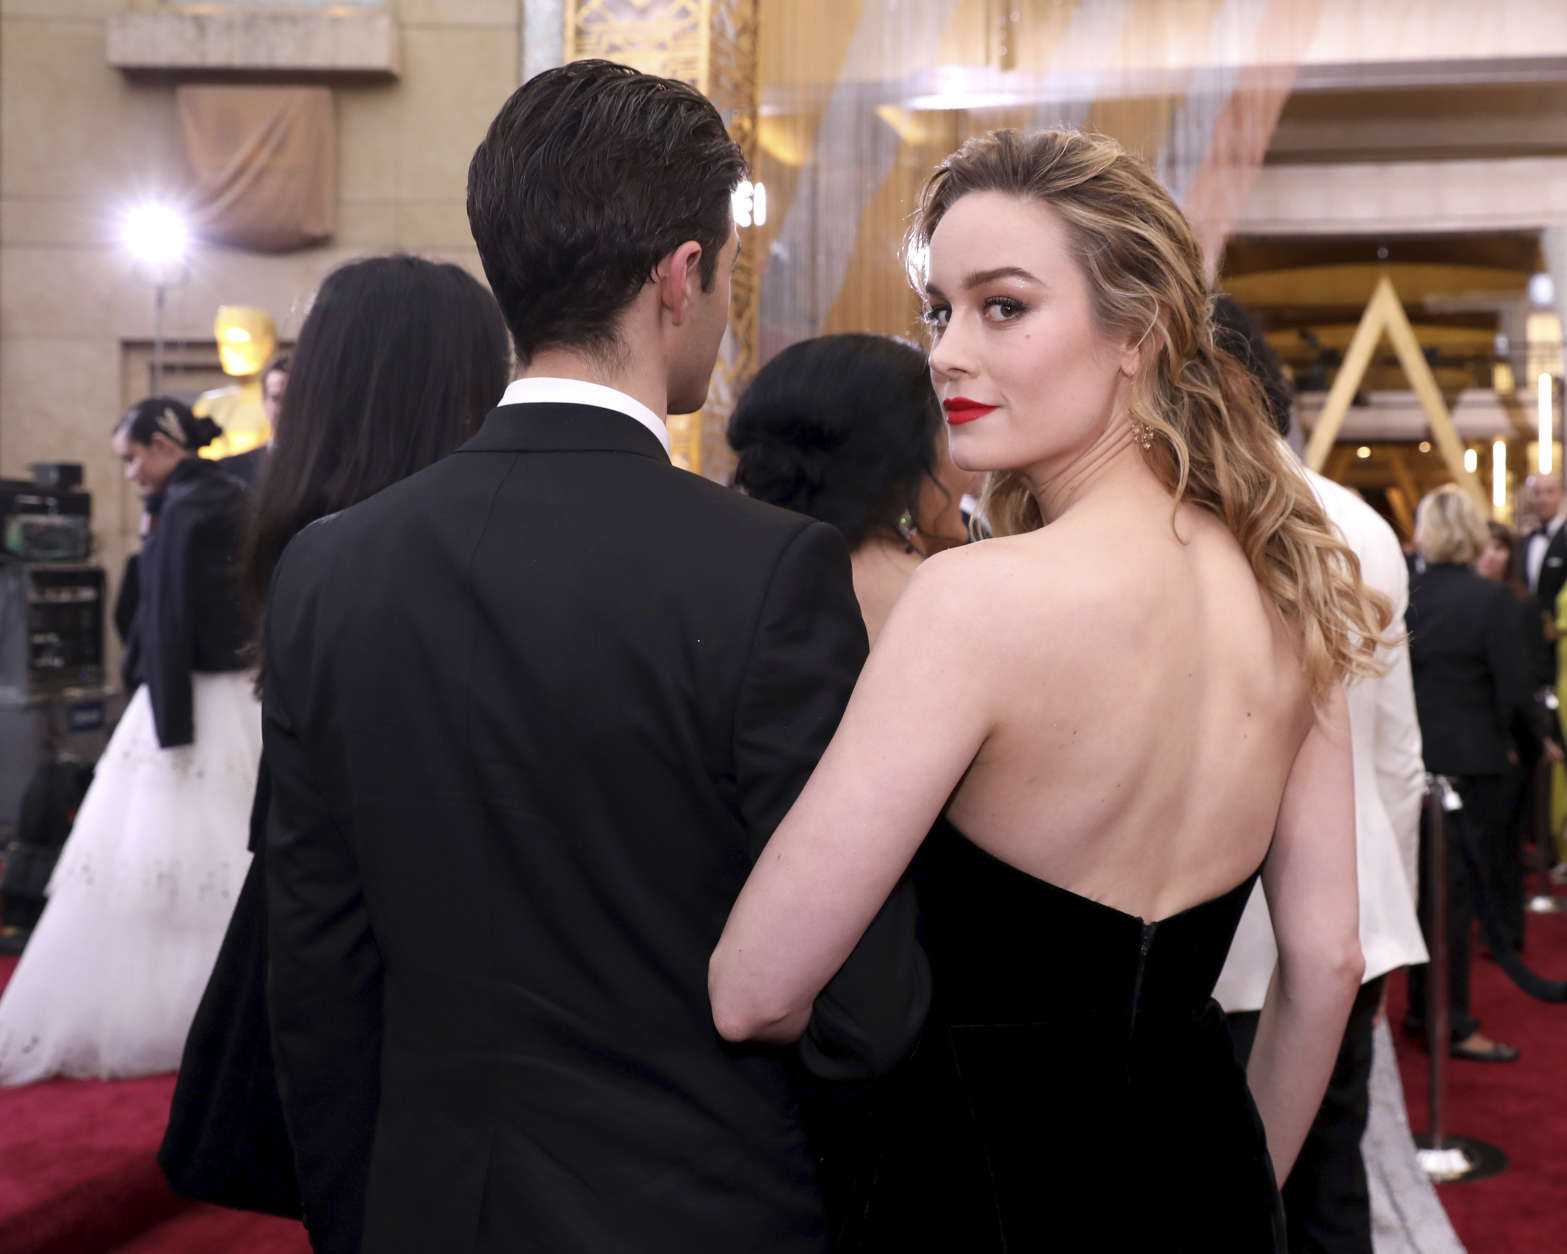 Brie Larson arrives at the Oscars on Sunday, Feb. 26, 2017, at the Dolby Theatre in Los Angeles. (Photo by Matt Sayles/Invision/AP)